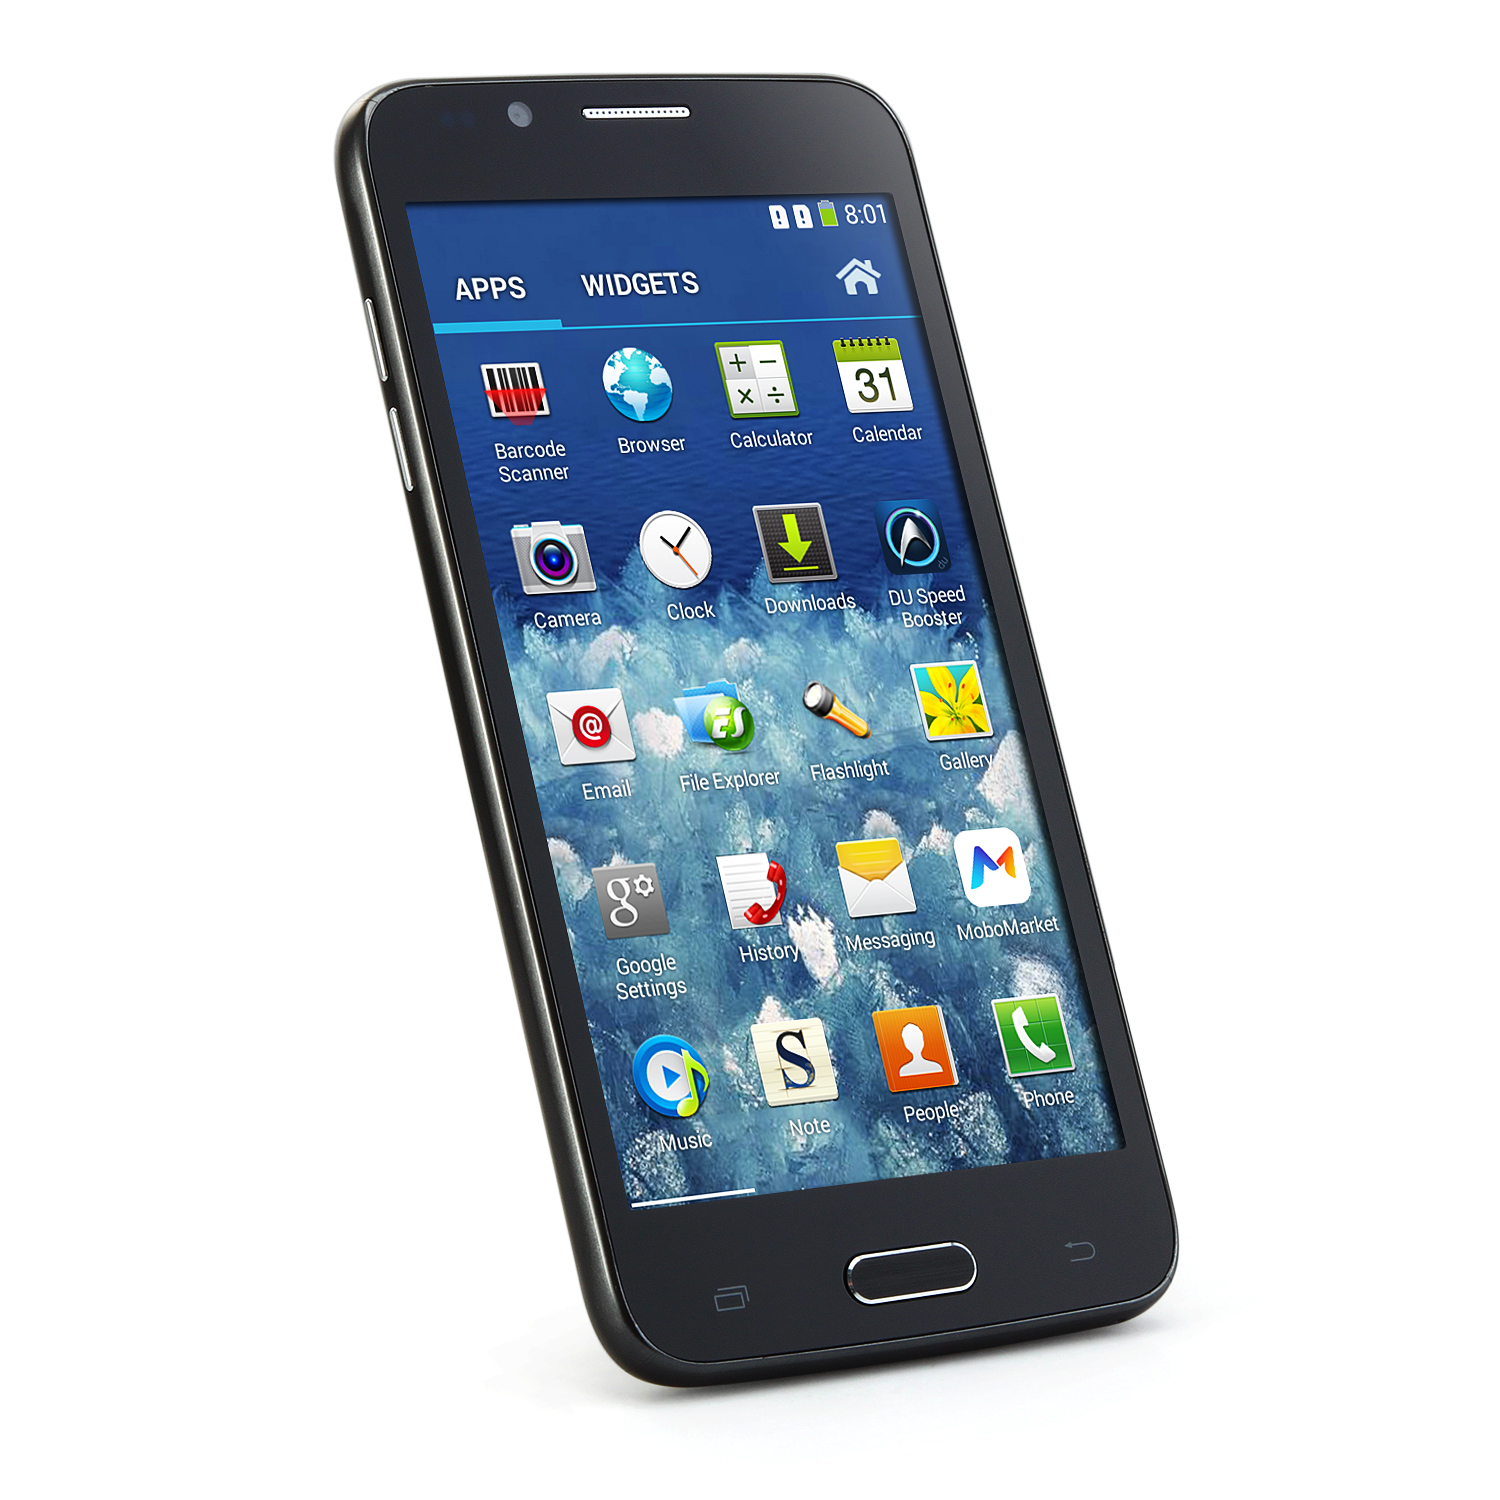 Tengda S6 Smartphone 5.0 Inch MTK6572M Dual Core Android 4.4 GPS Black